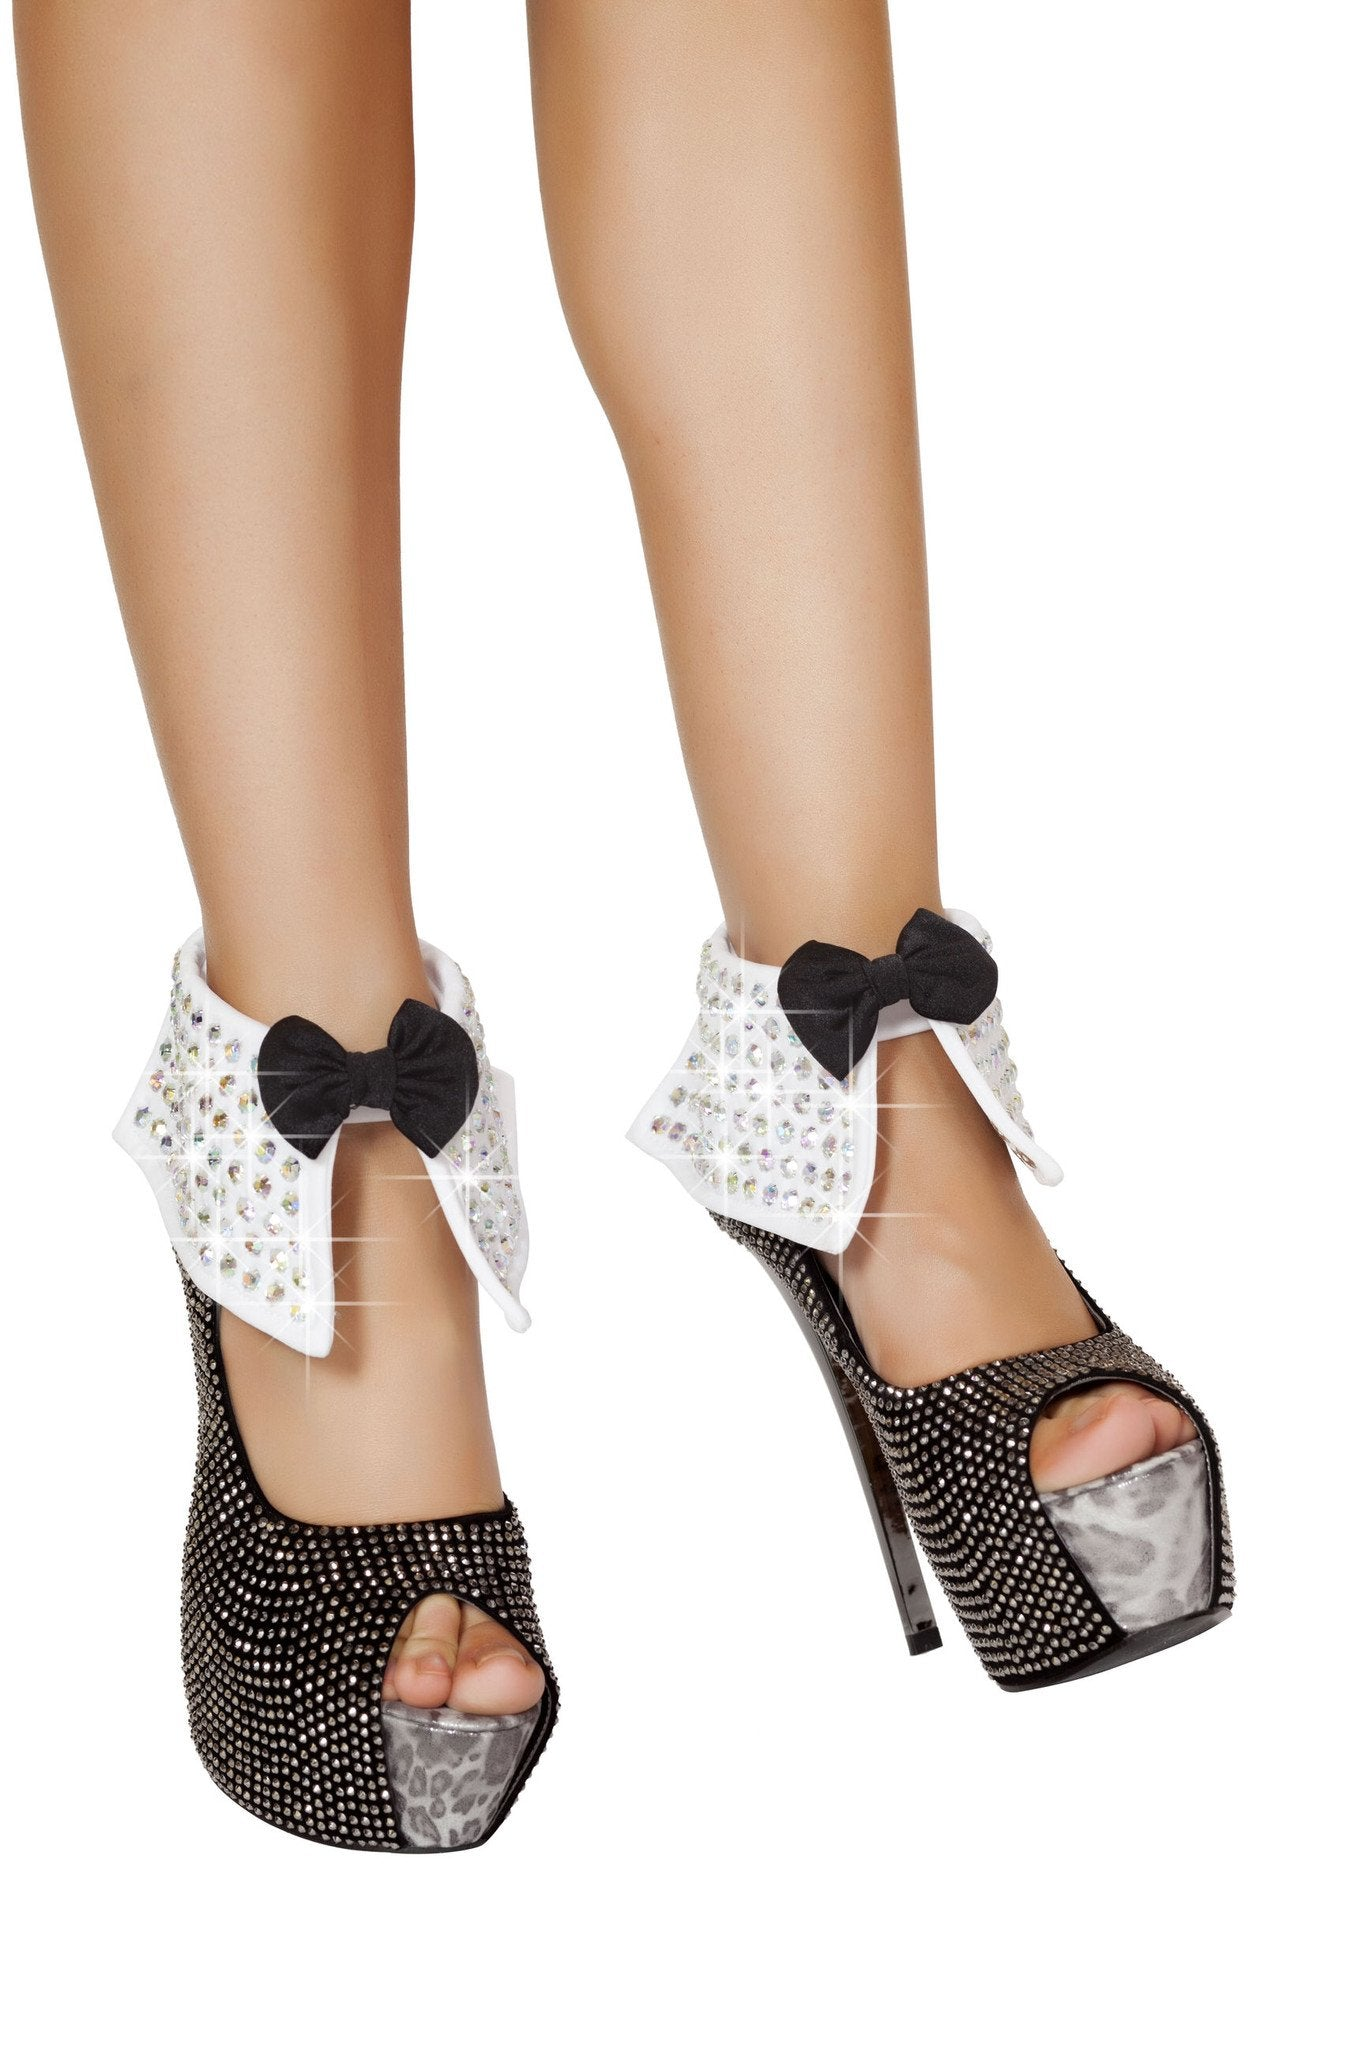 4506 - Rhinestone Ankle Cuffs with Bow - PlaythingsMiami